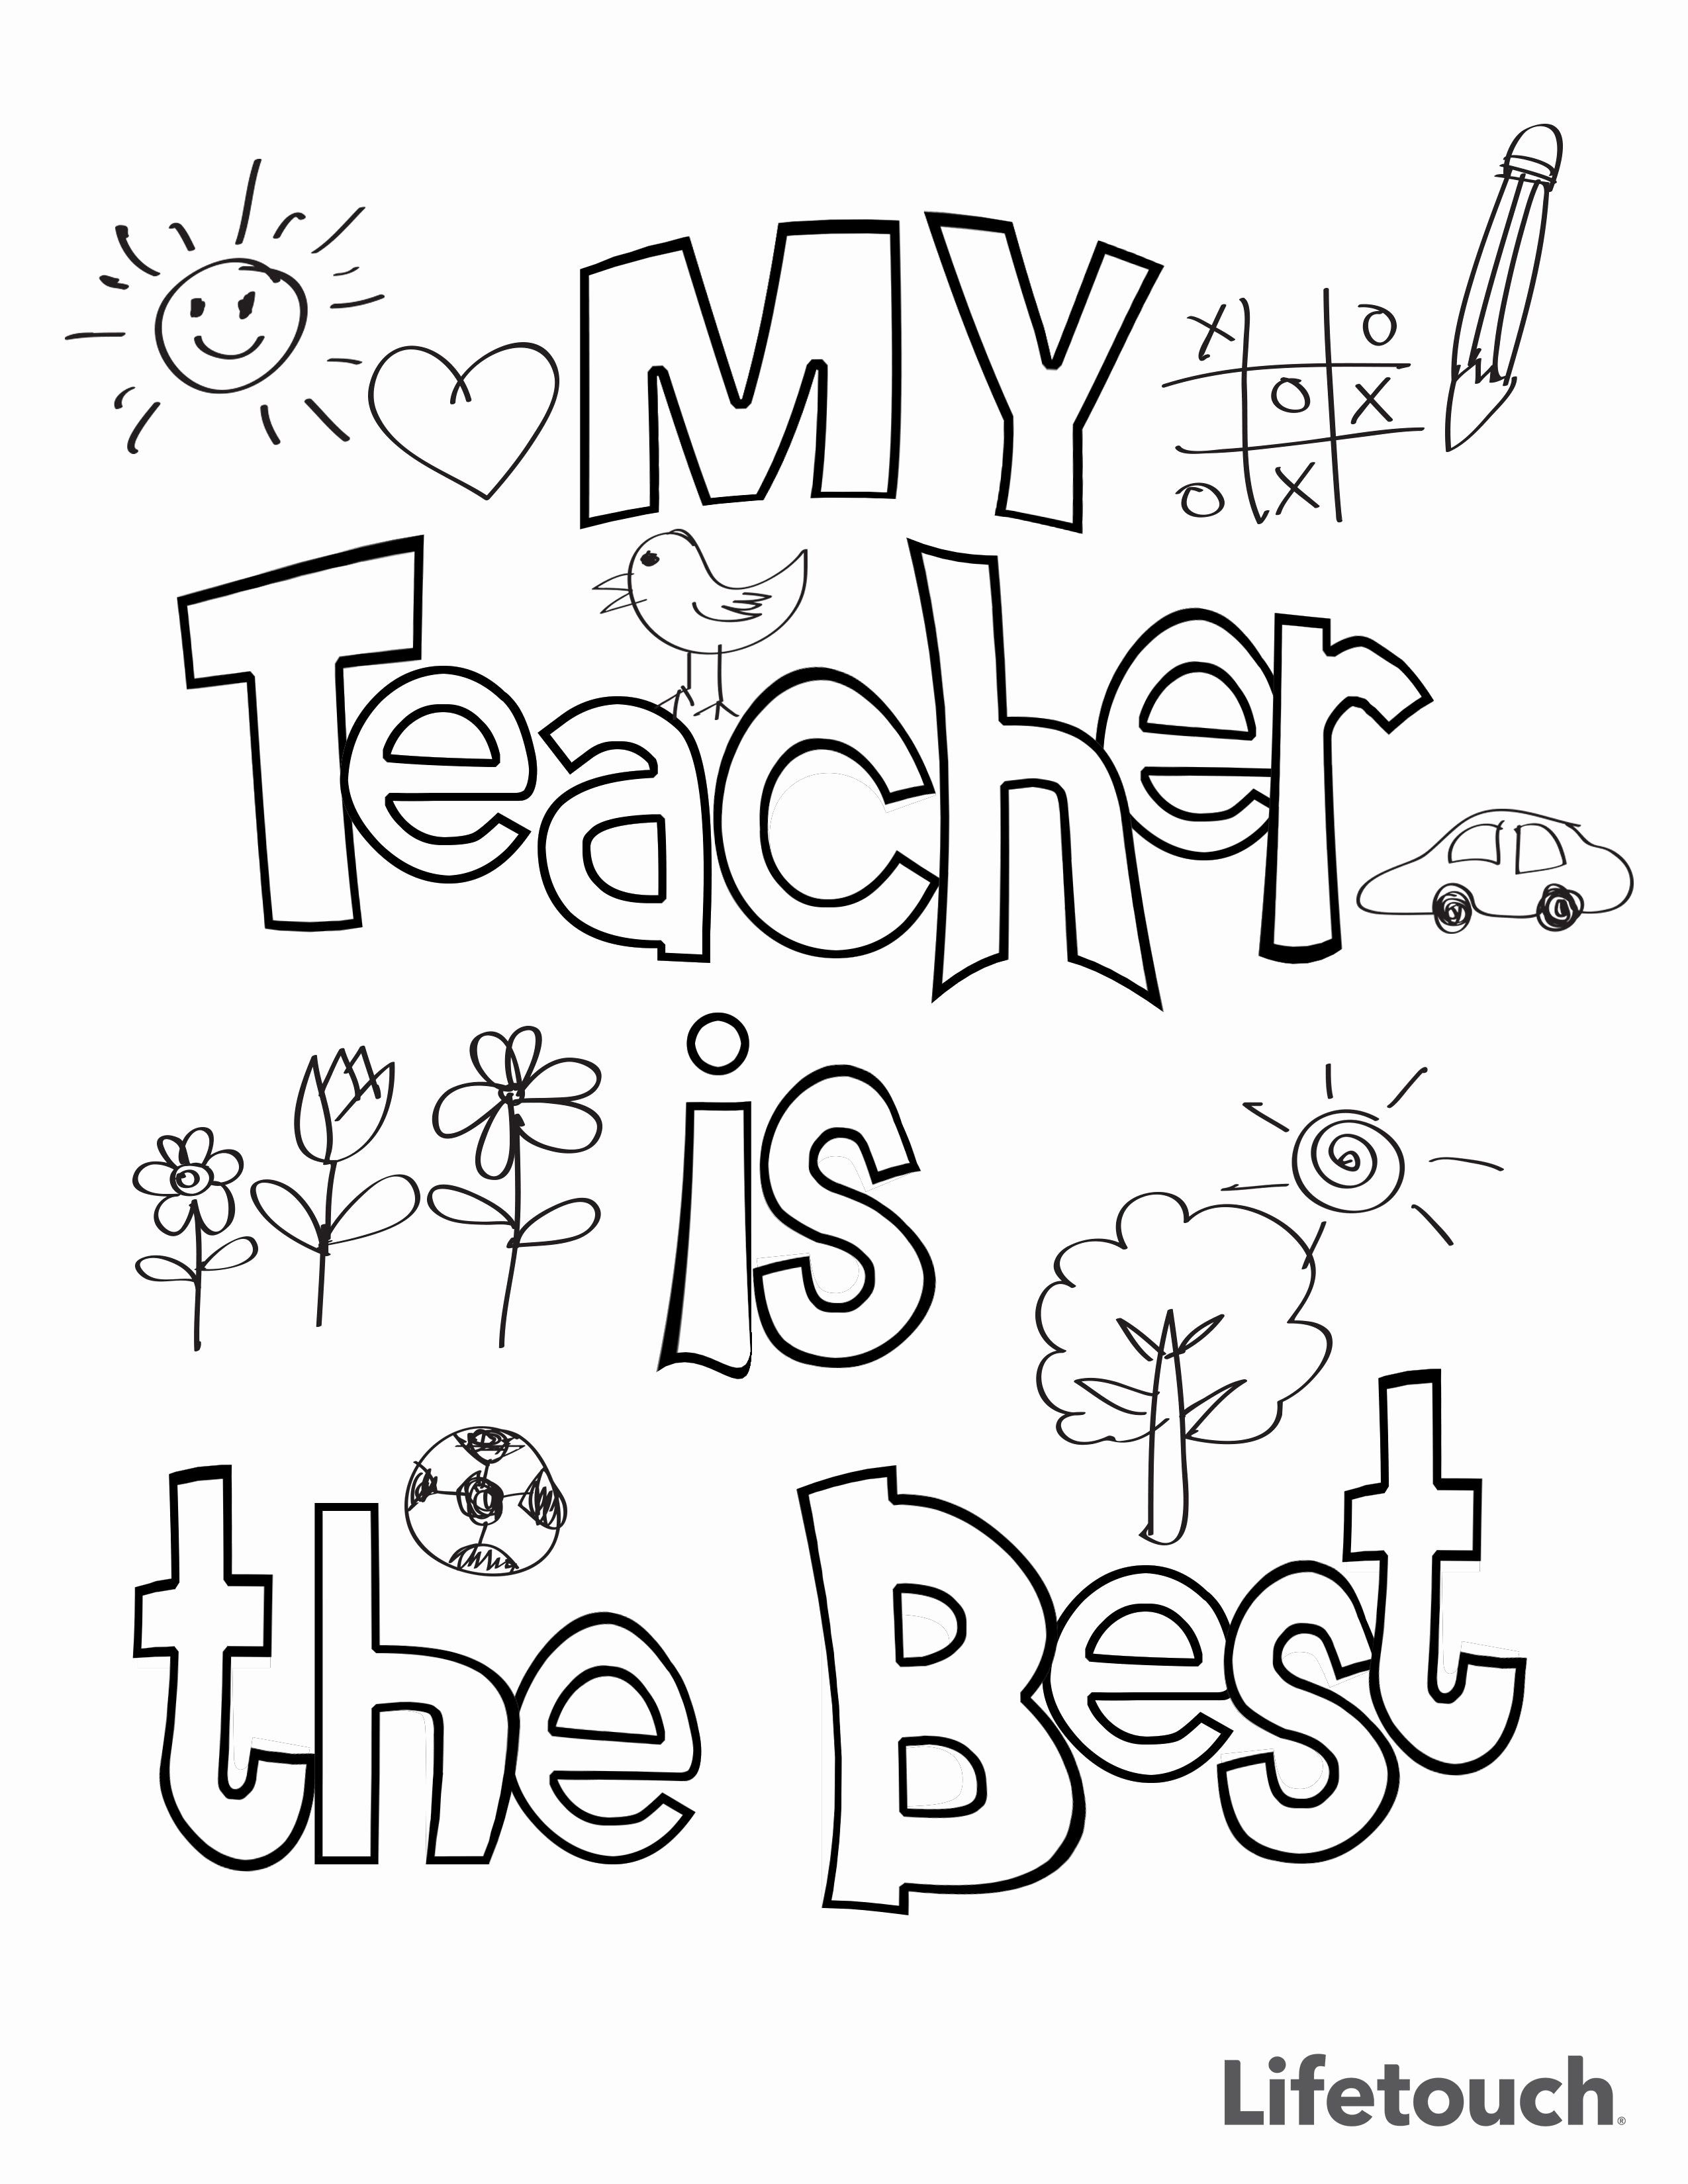 Coloring Activities For College Students Beautiful Teache Teacher Appreciation Printables Teachers Appreciation Week Gifts Teacher Appreciation Week Printables